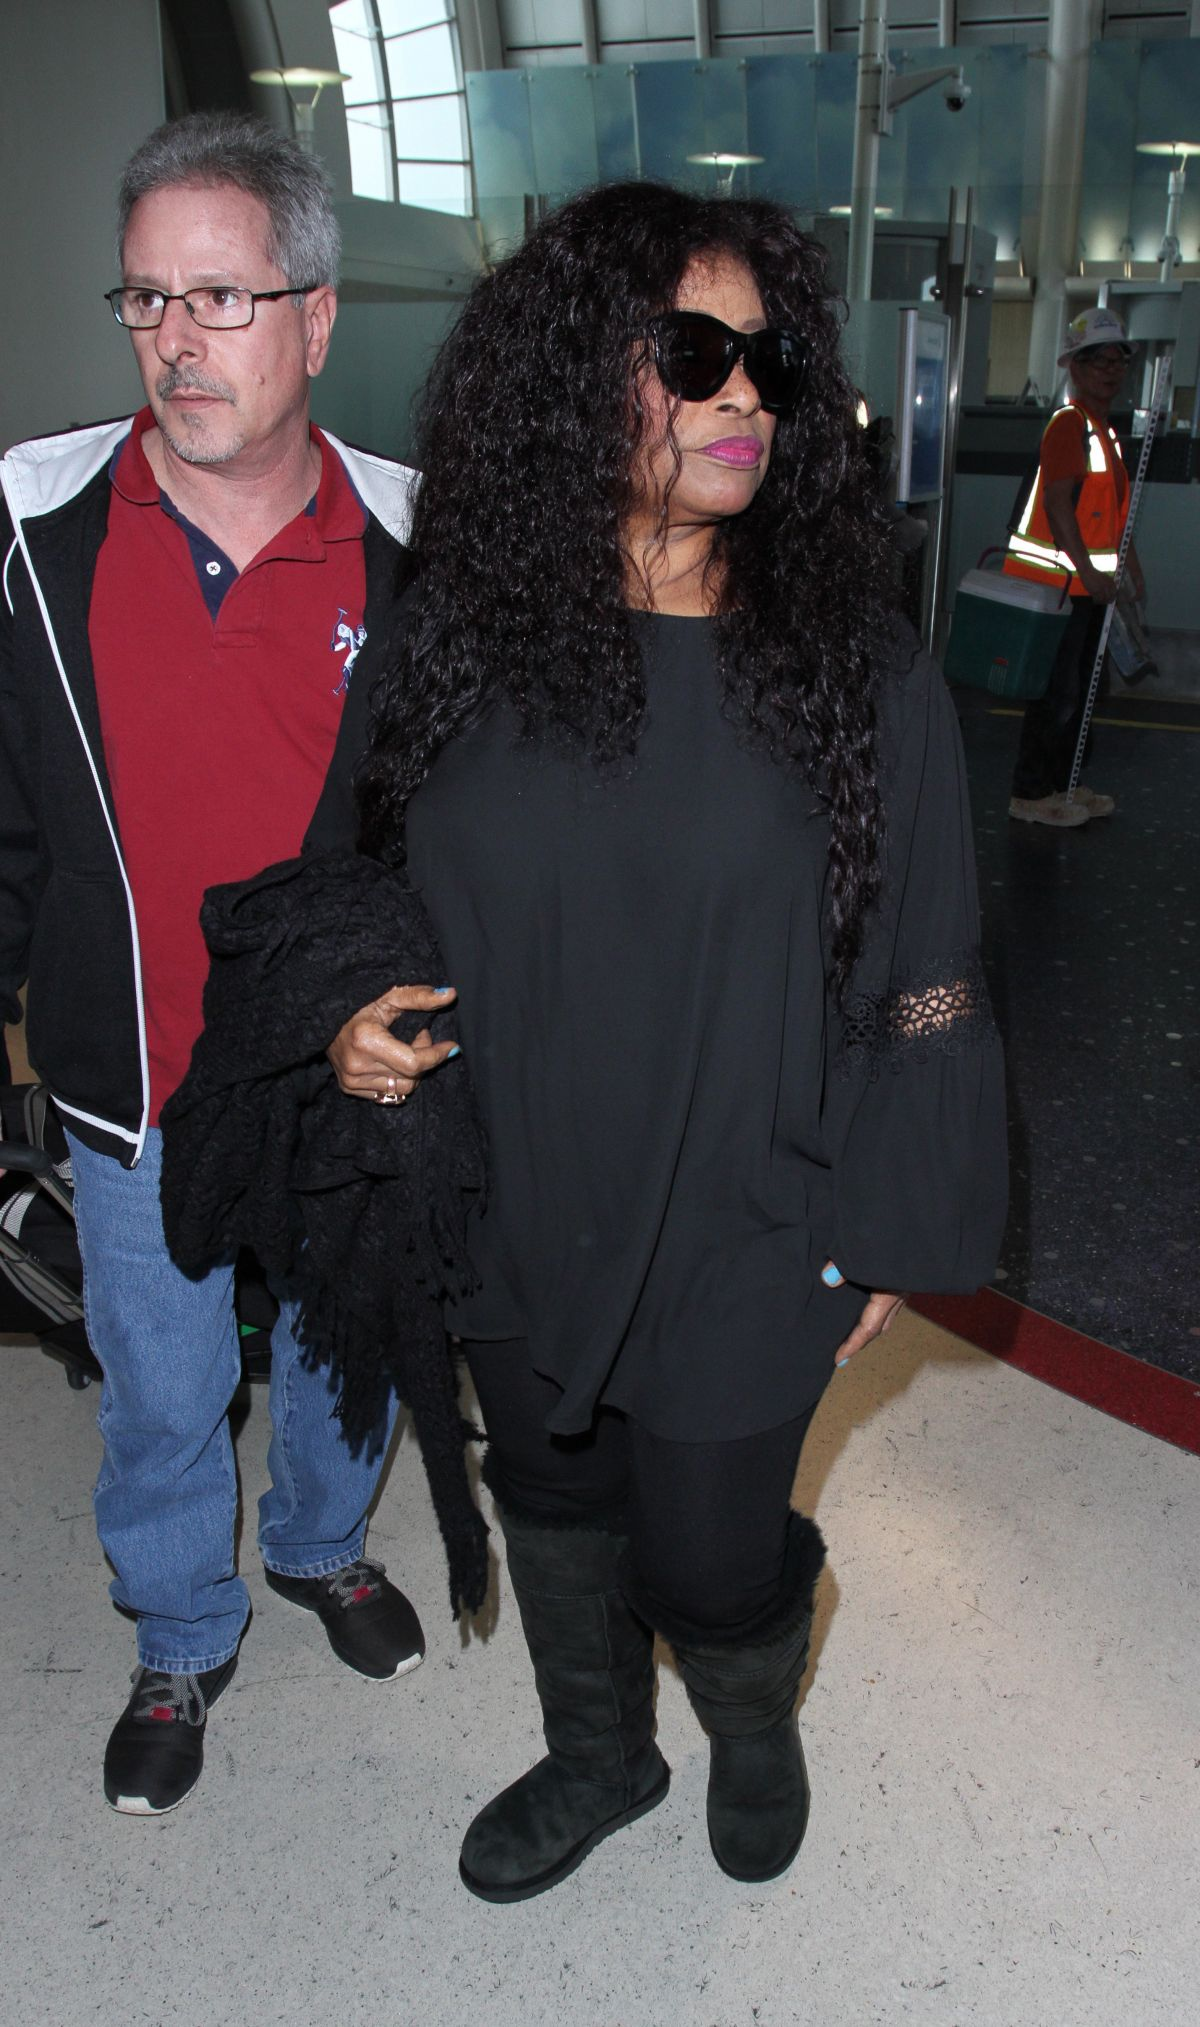 CHAKA KHAN at LAX Airport in Los Angeles 02/17/2017